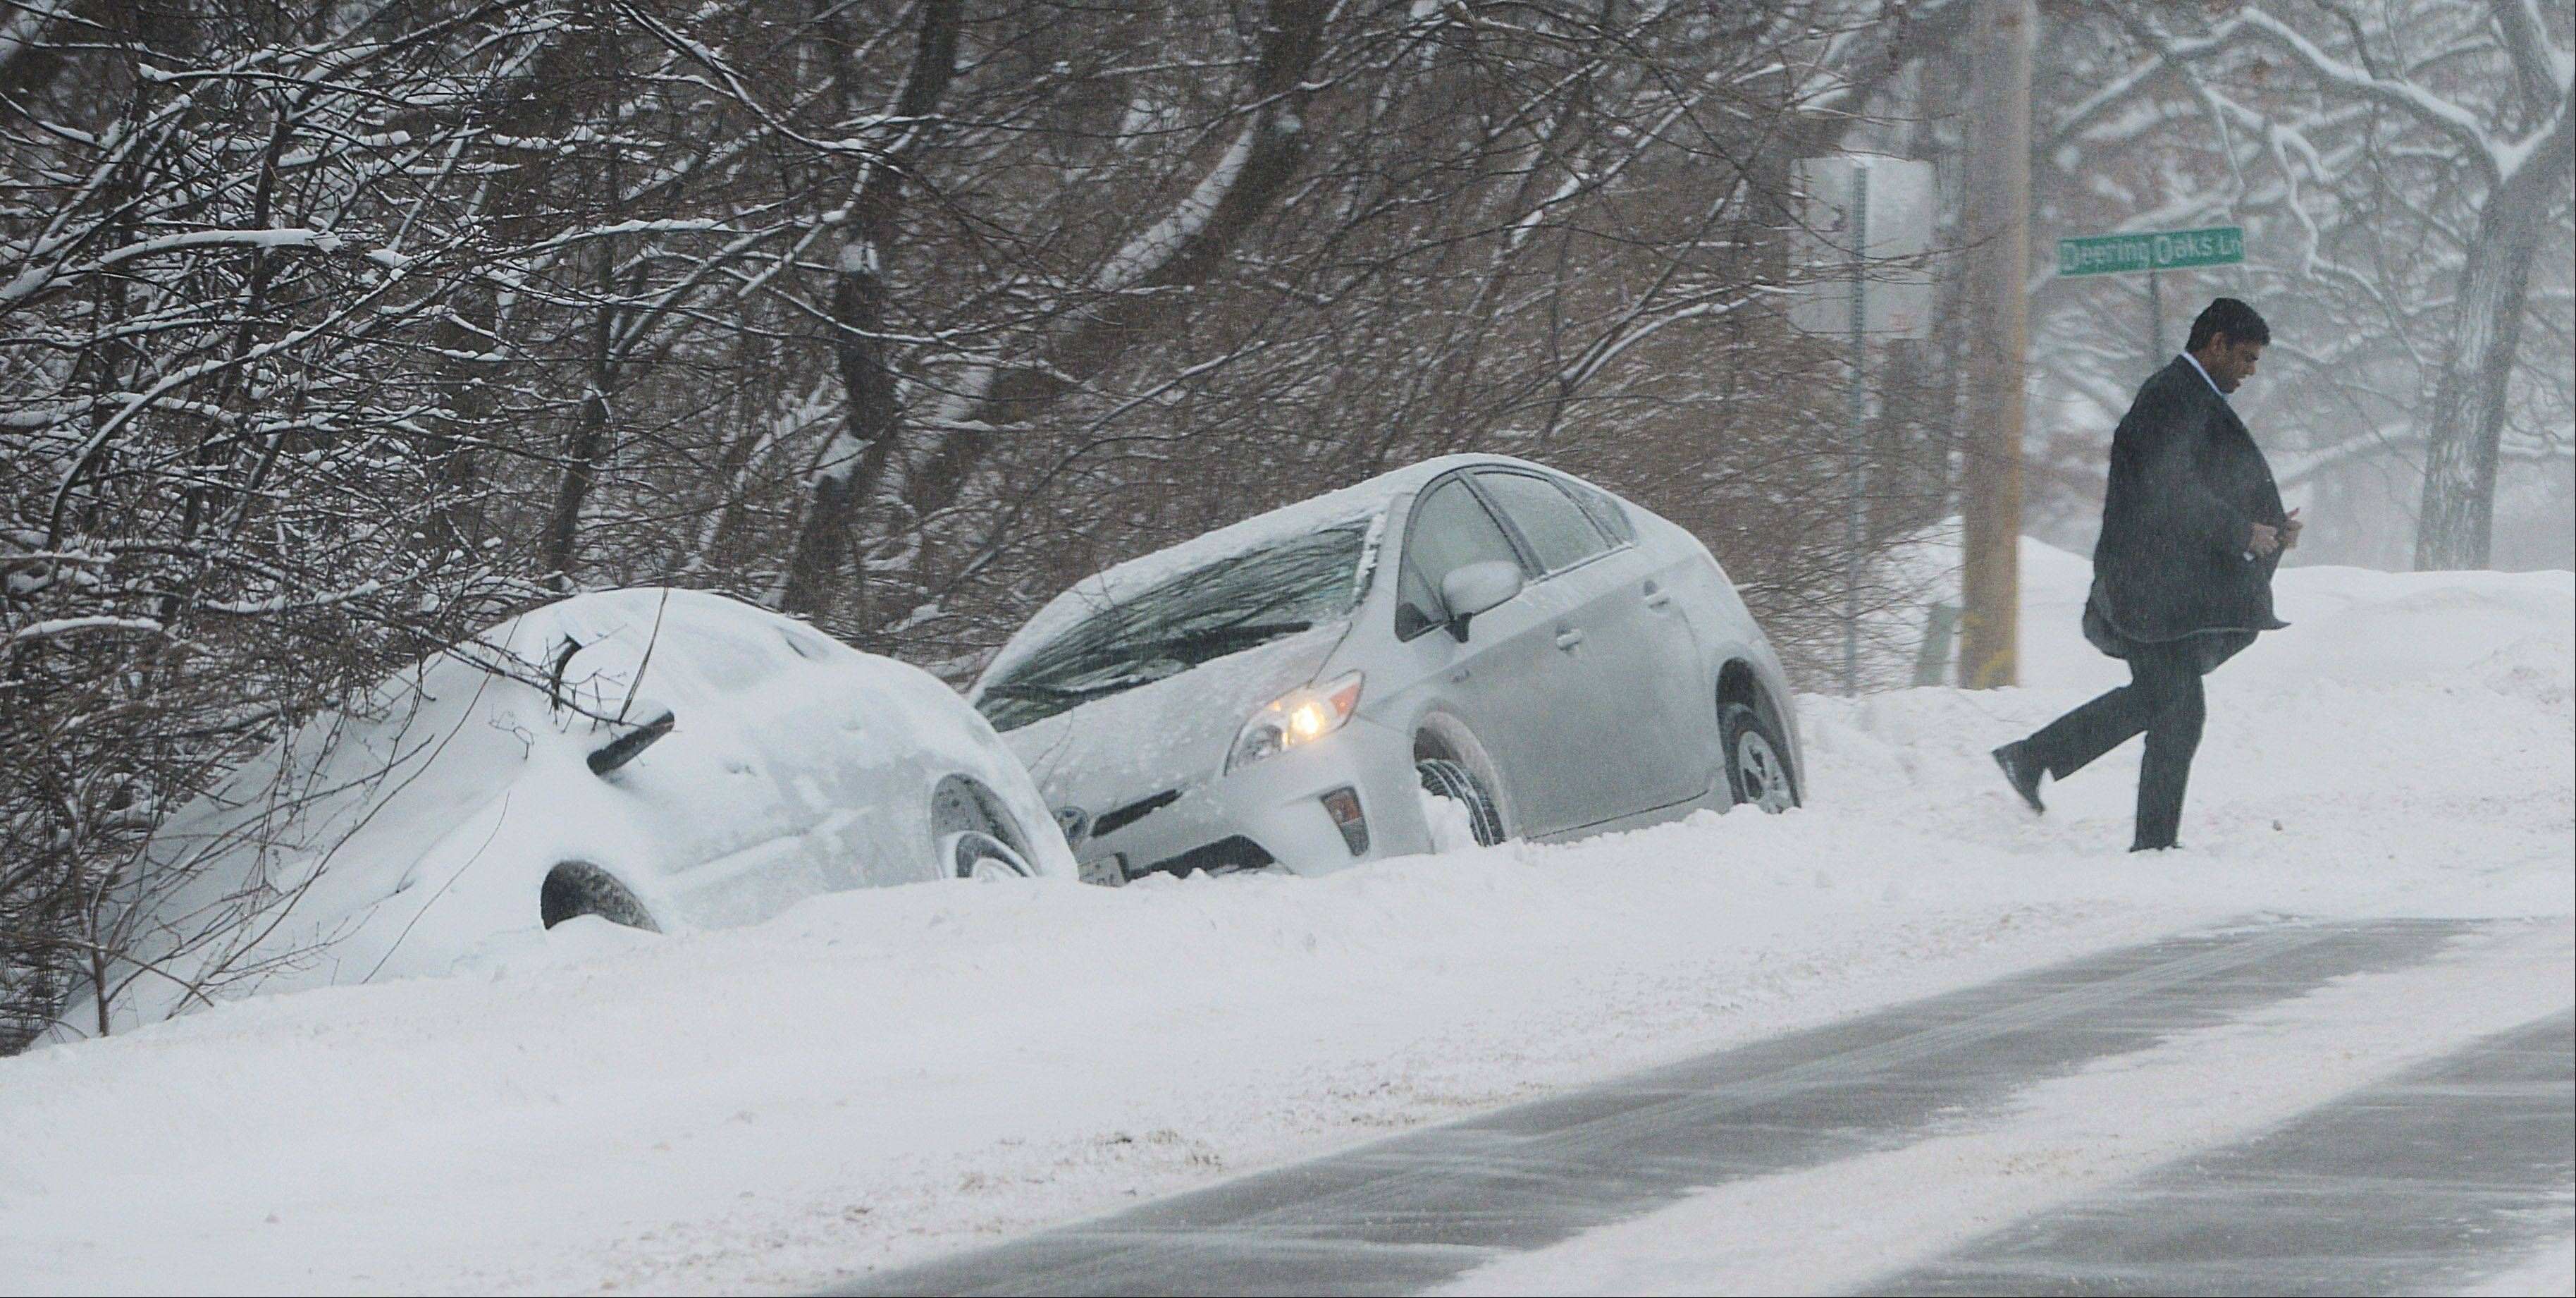 A driver emerges from his car after sliding into a ditch along Terra Cotta Road in Crystal Lake Wednesday morning. Another car sits in the same spot from an earlier incident.